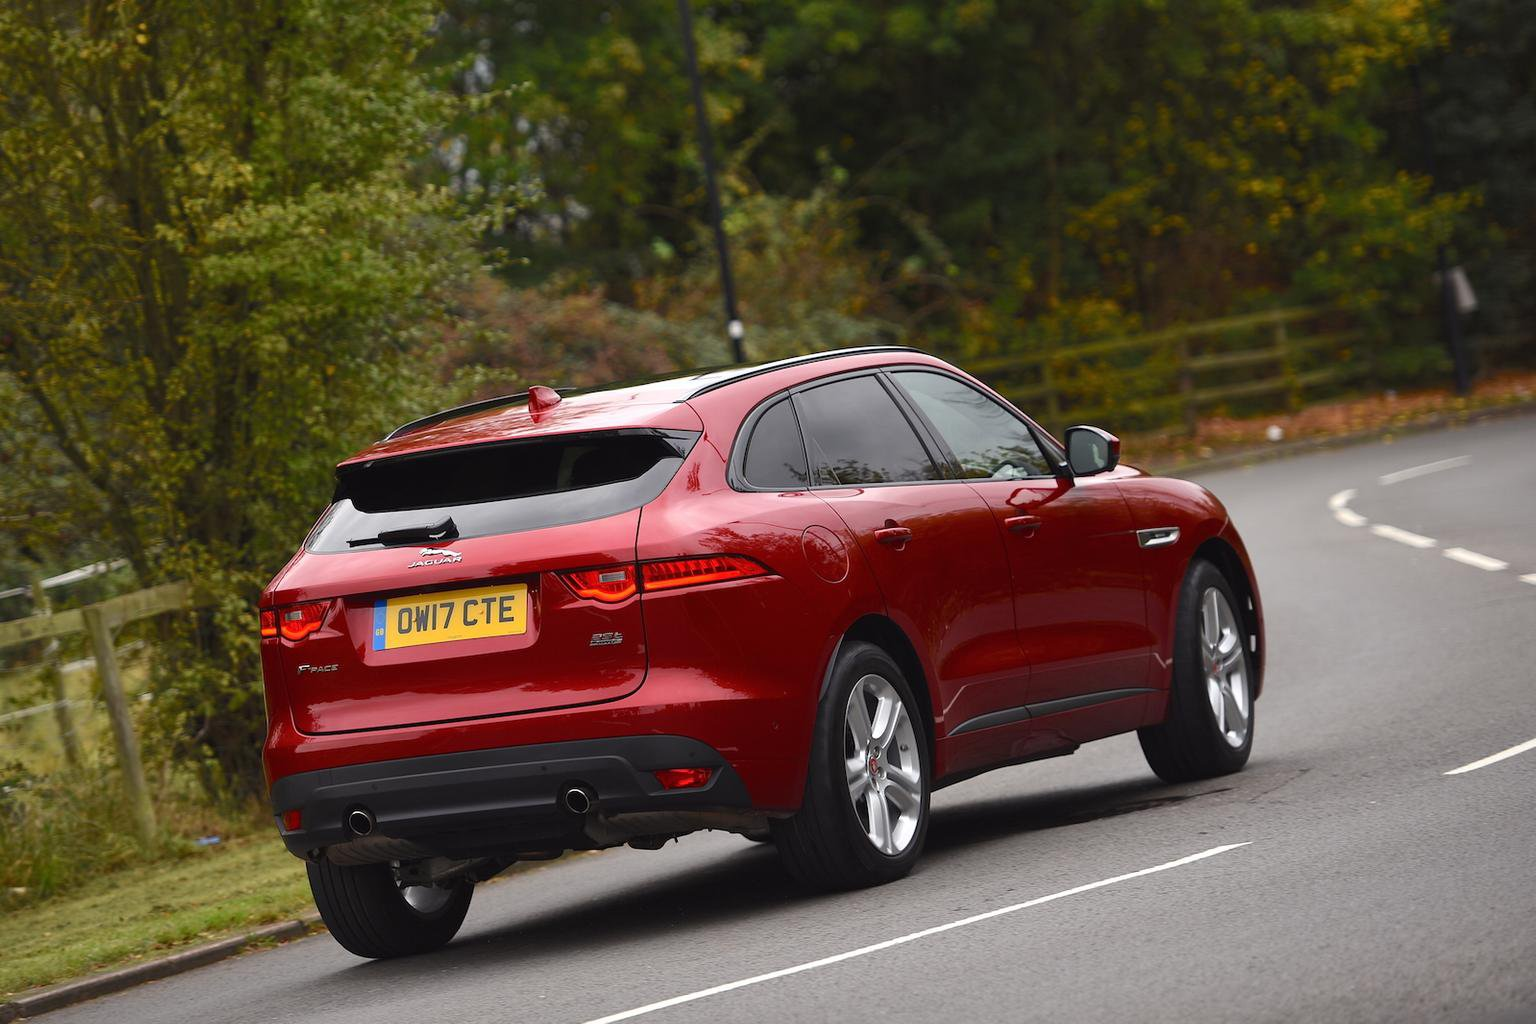 2017 Jaguar F-Pace 25t AWD review - price, specs and release date